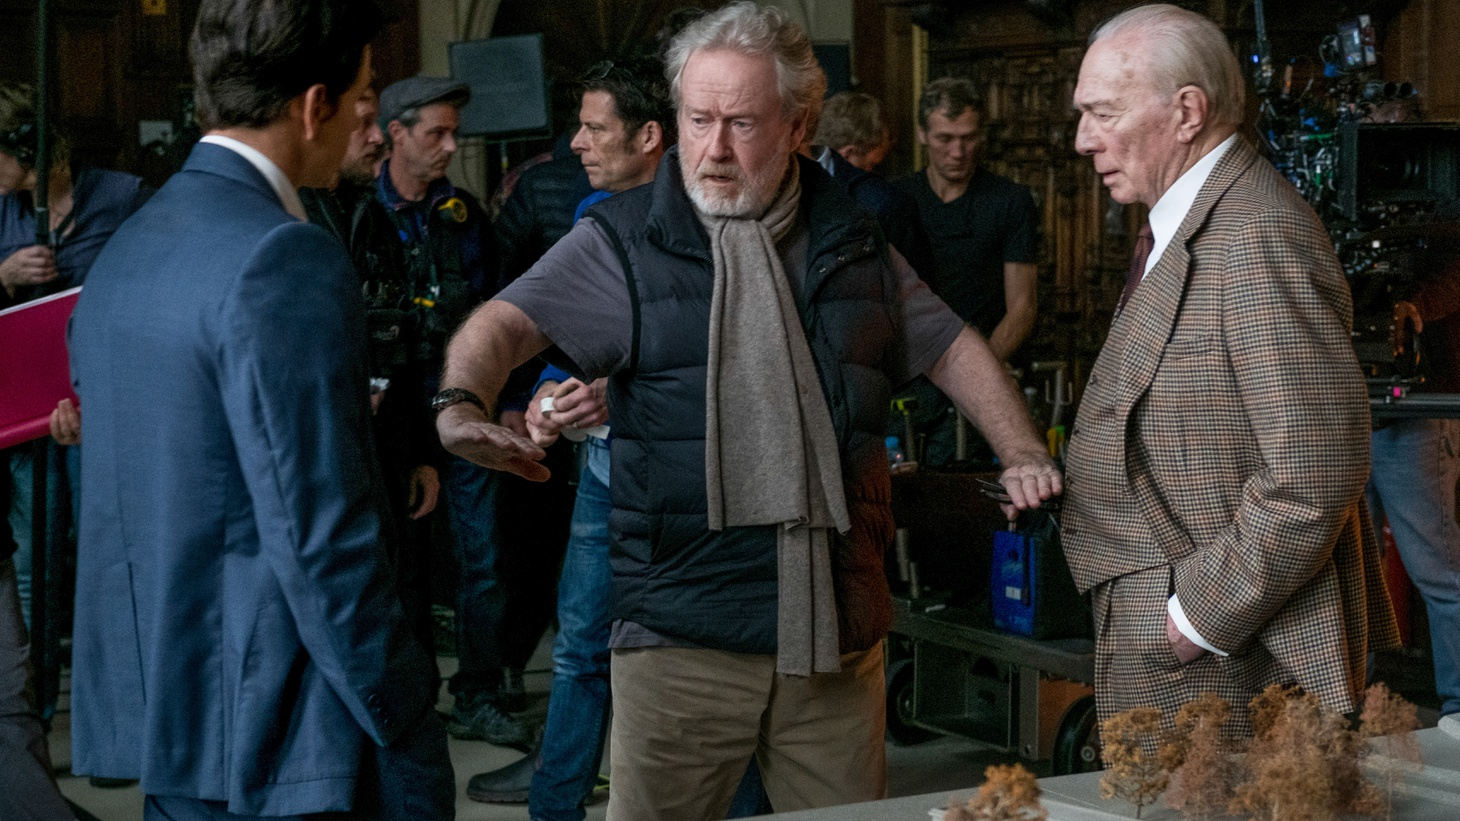 Sir Ridley Scott just pulled off a one-of-a-kind filmmaking feat--cutting Kevin Spacey out of his new film and reshooting with Christopher Plummer in the role--all in just six weeks. Scott tells us about his mad dash to refilm 22 scenes of the Getty family kidnapping drama All the Money in the World.